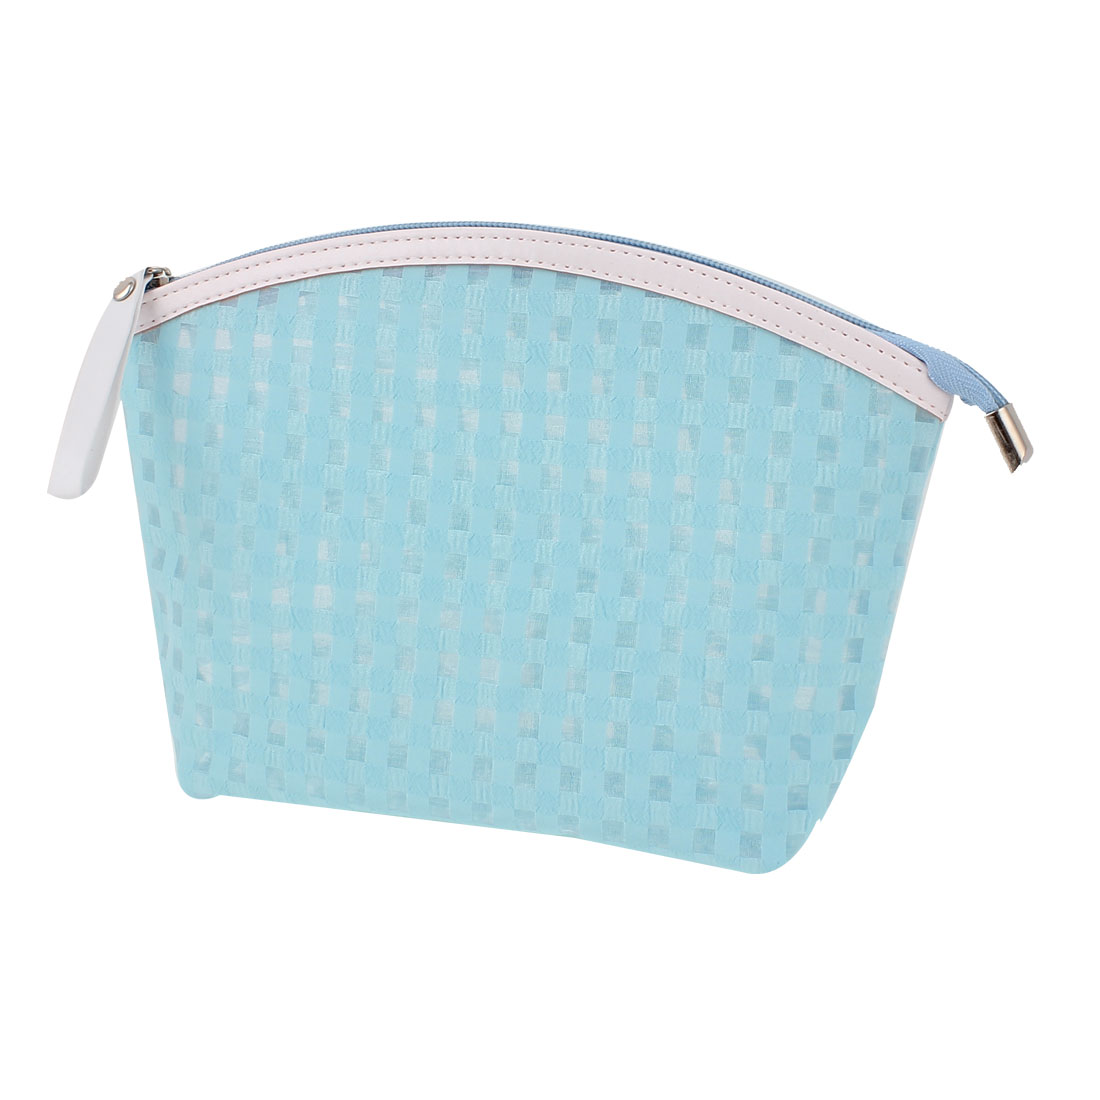 Travel Portable Zippered Plaids Print PVC Cosmetic Makeup Bag Toiletries Sundries Holder Sky Blue for Lady